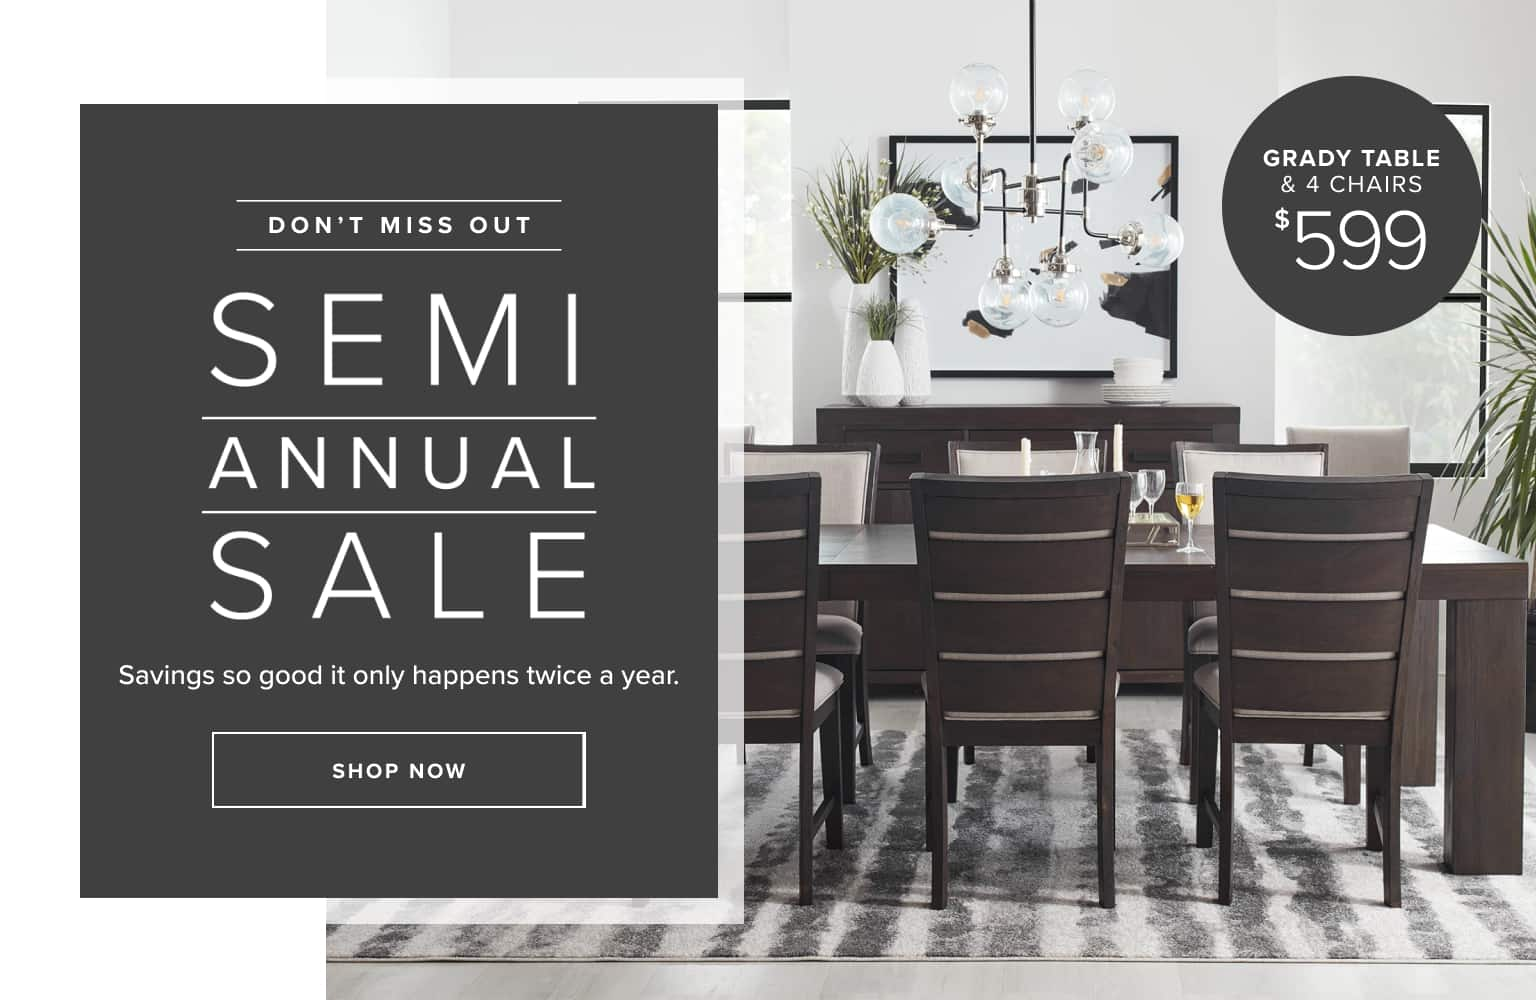 Don't miss out. Semi-annual sale. Savings so good it only happens twice a year. Click to shop. Grady Table & 4 Chairs $599.